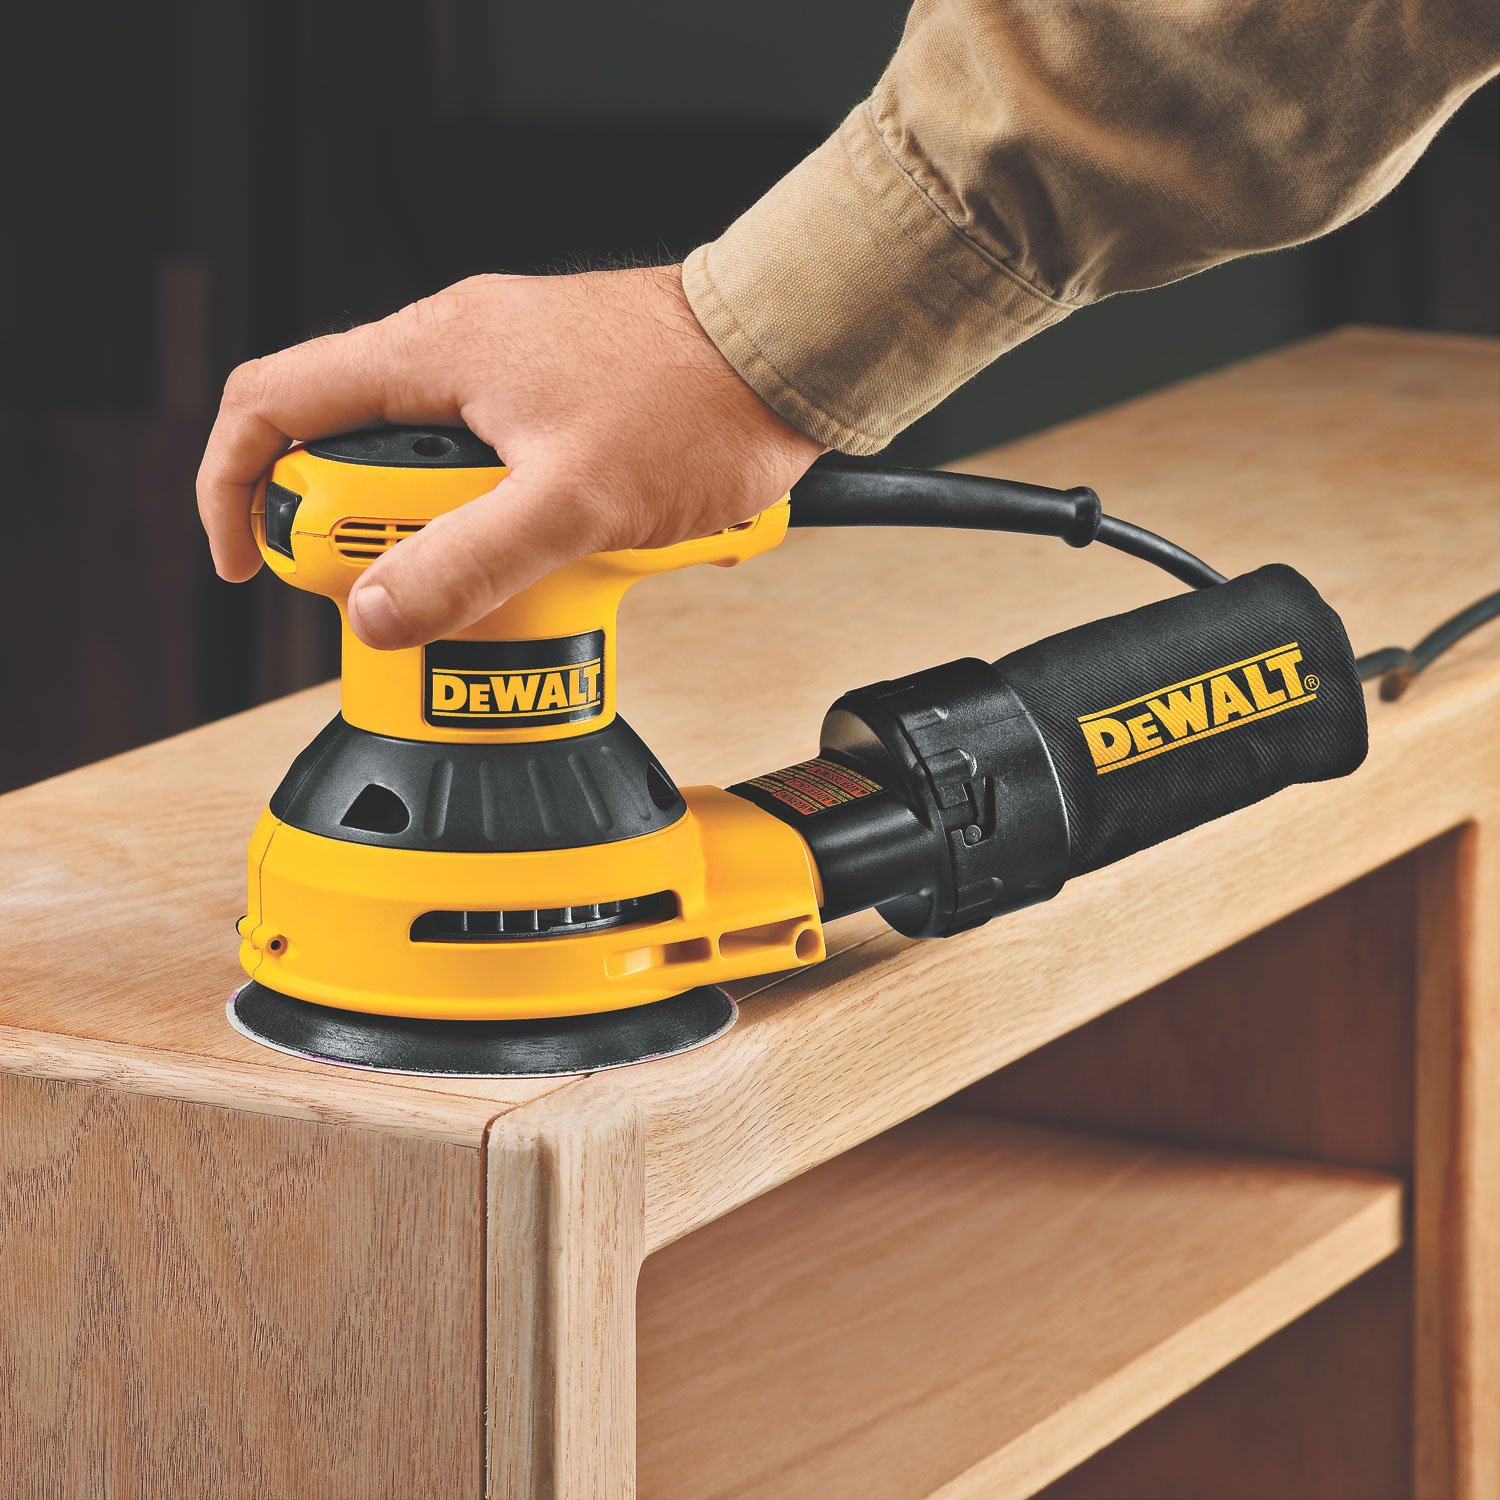 DEWALT D26451K Corded 3 Amp 5-Inch Random Orbit Sander with Cloth Dust Bag